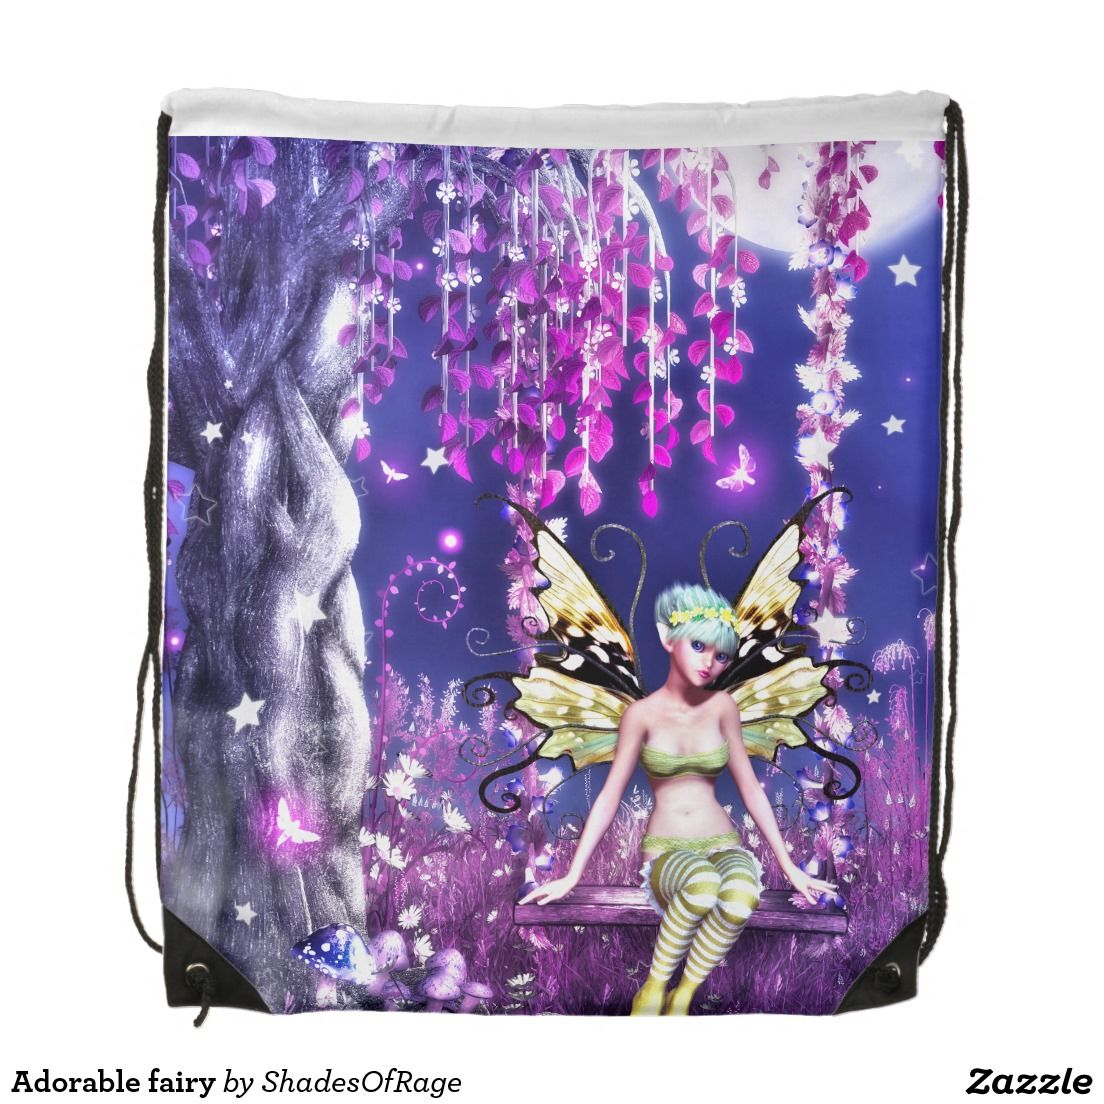 Adorable fairy backpack